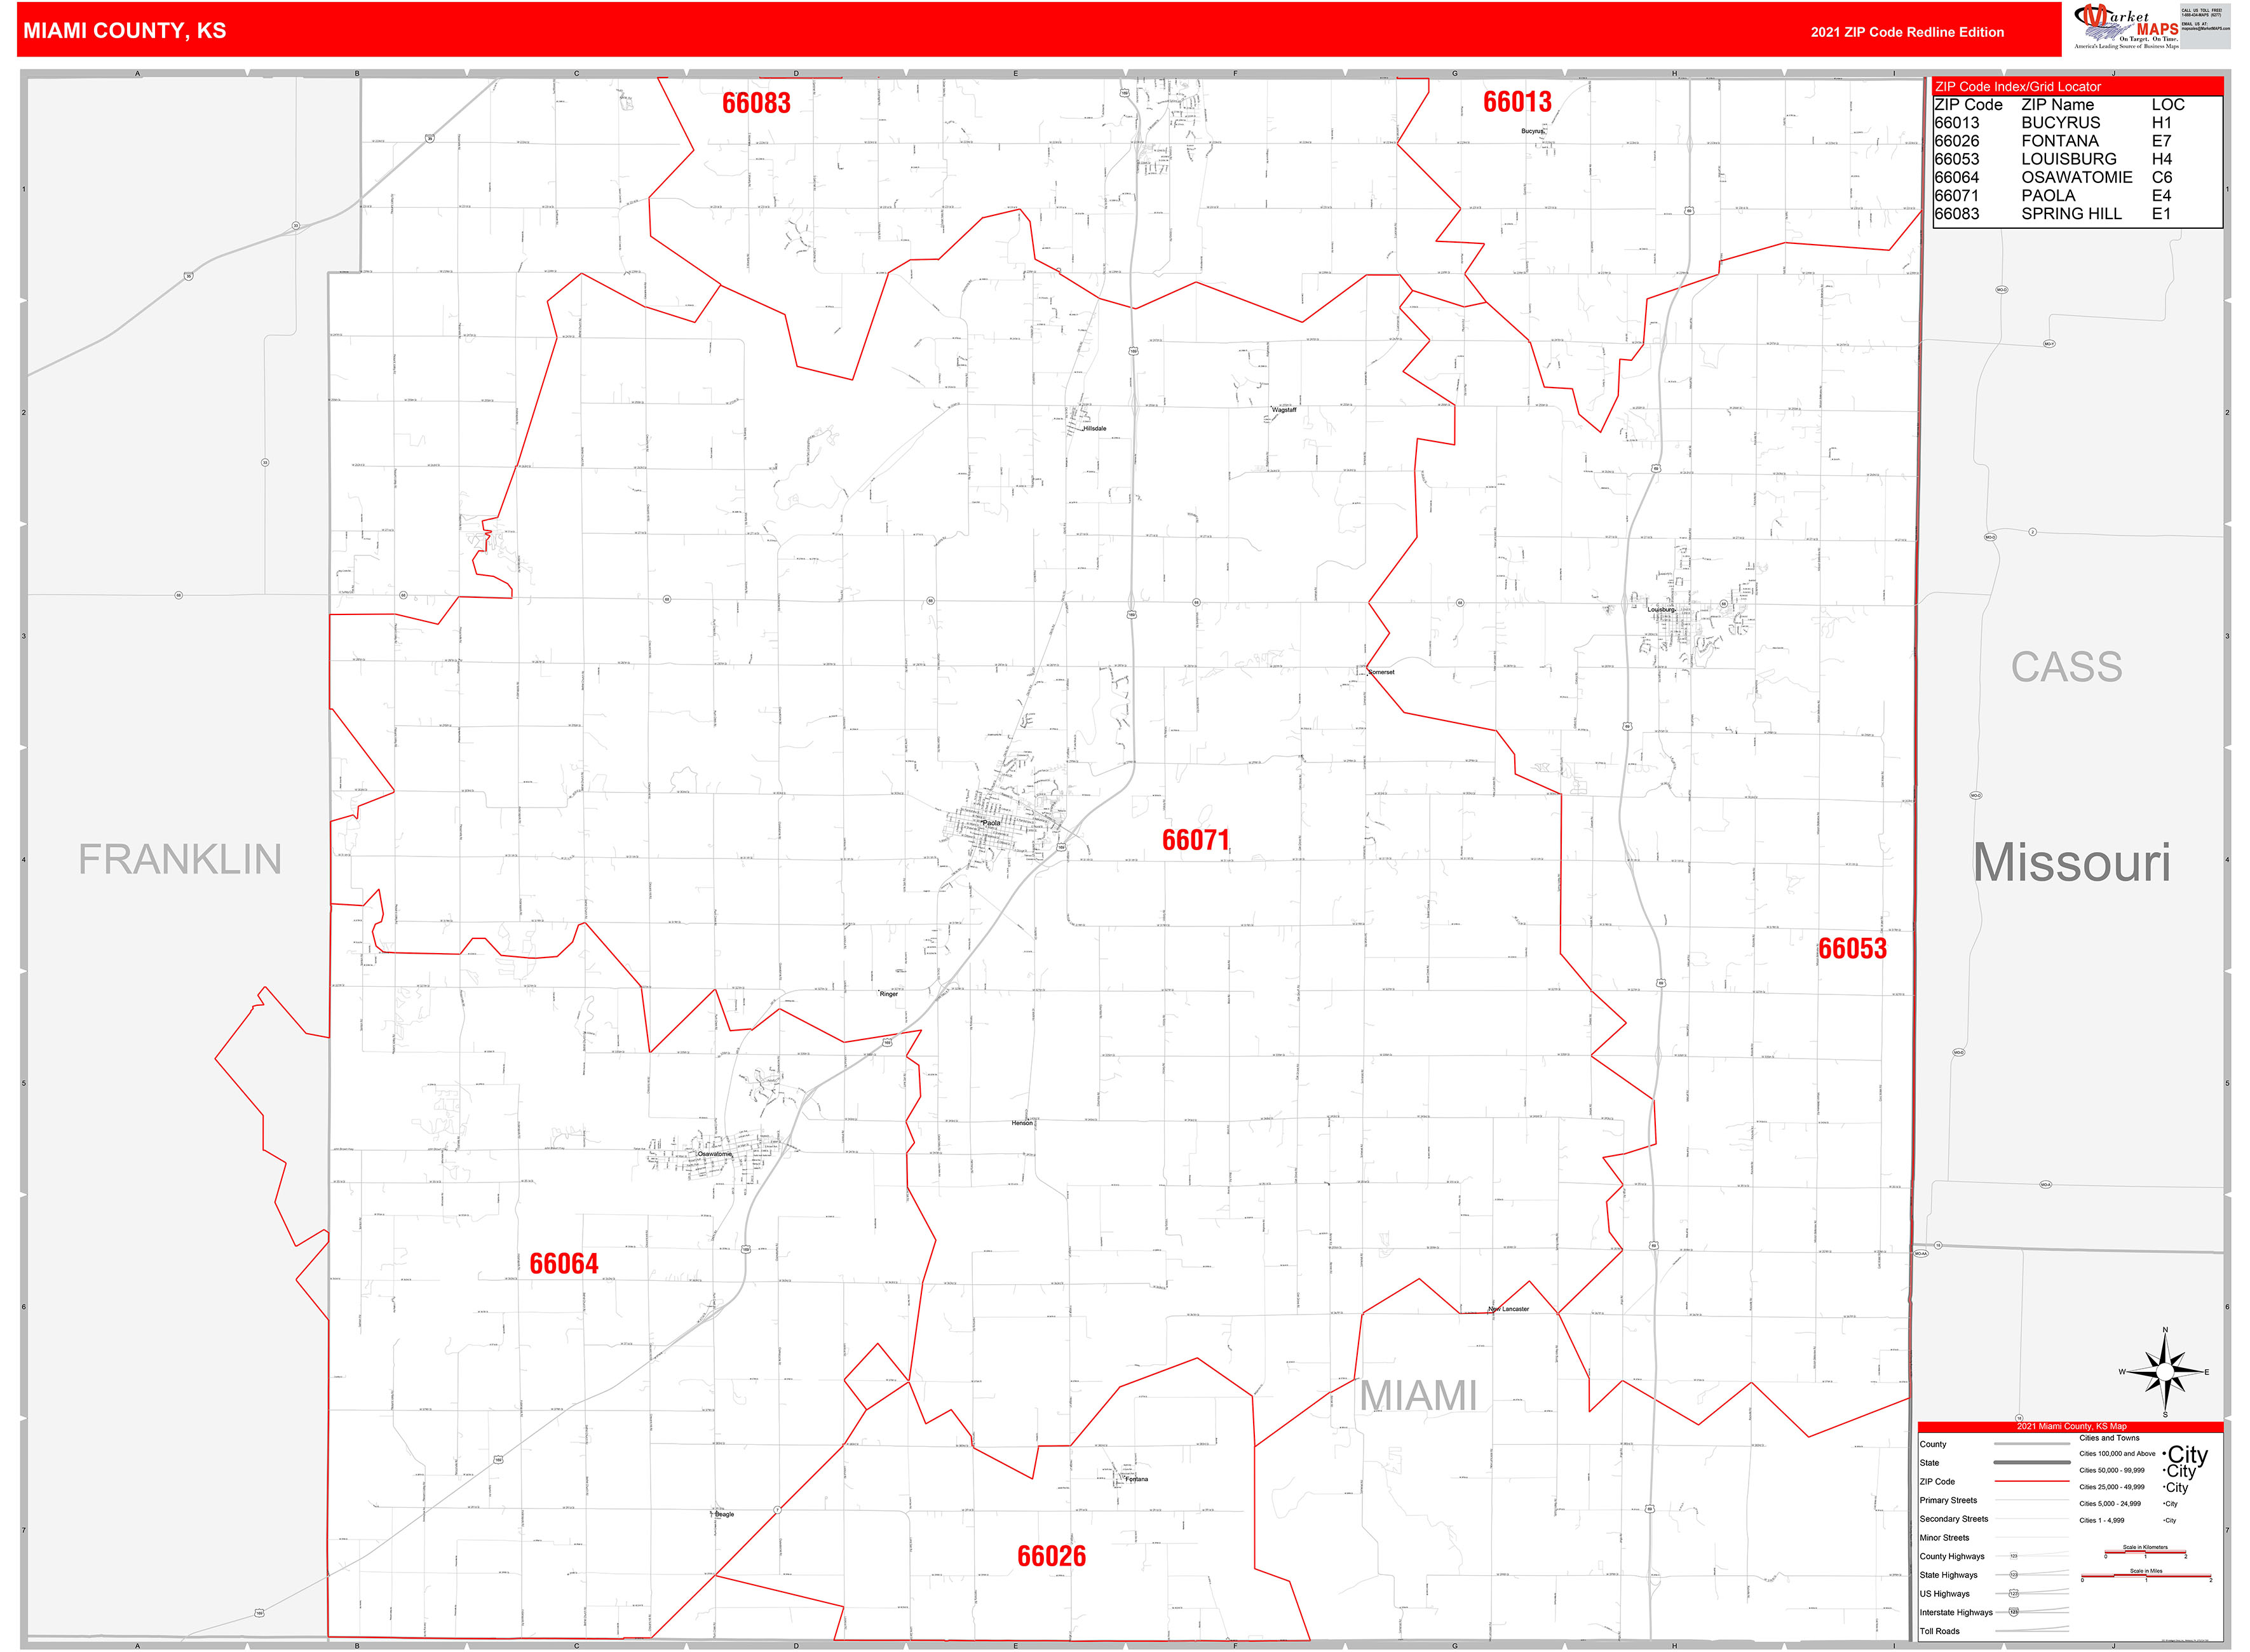 miami county, ks zip code wall map red line style